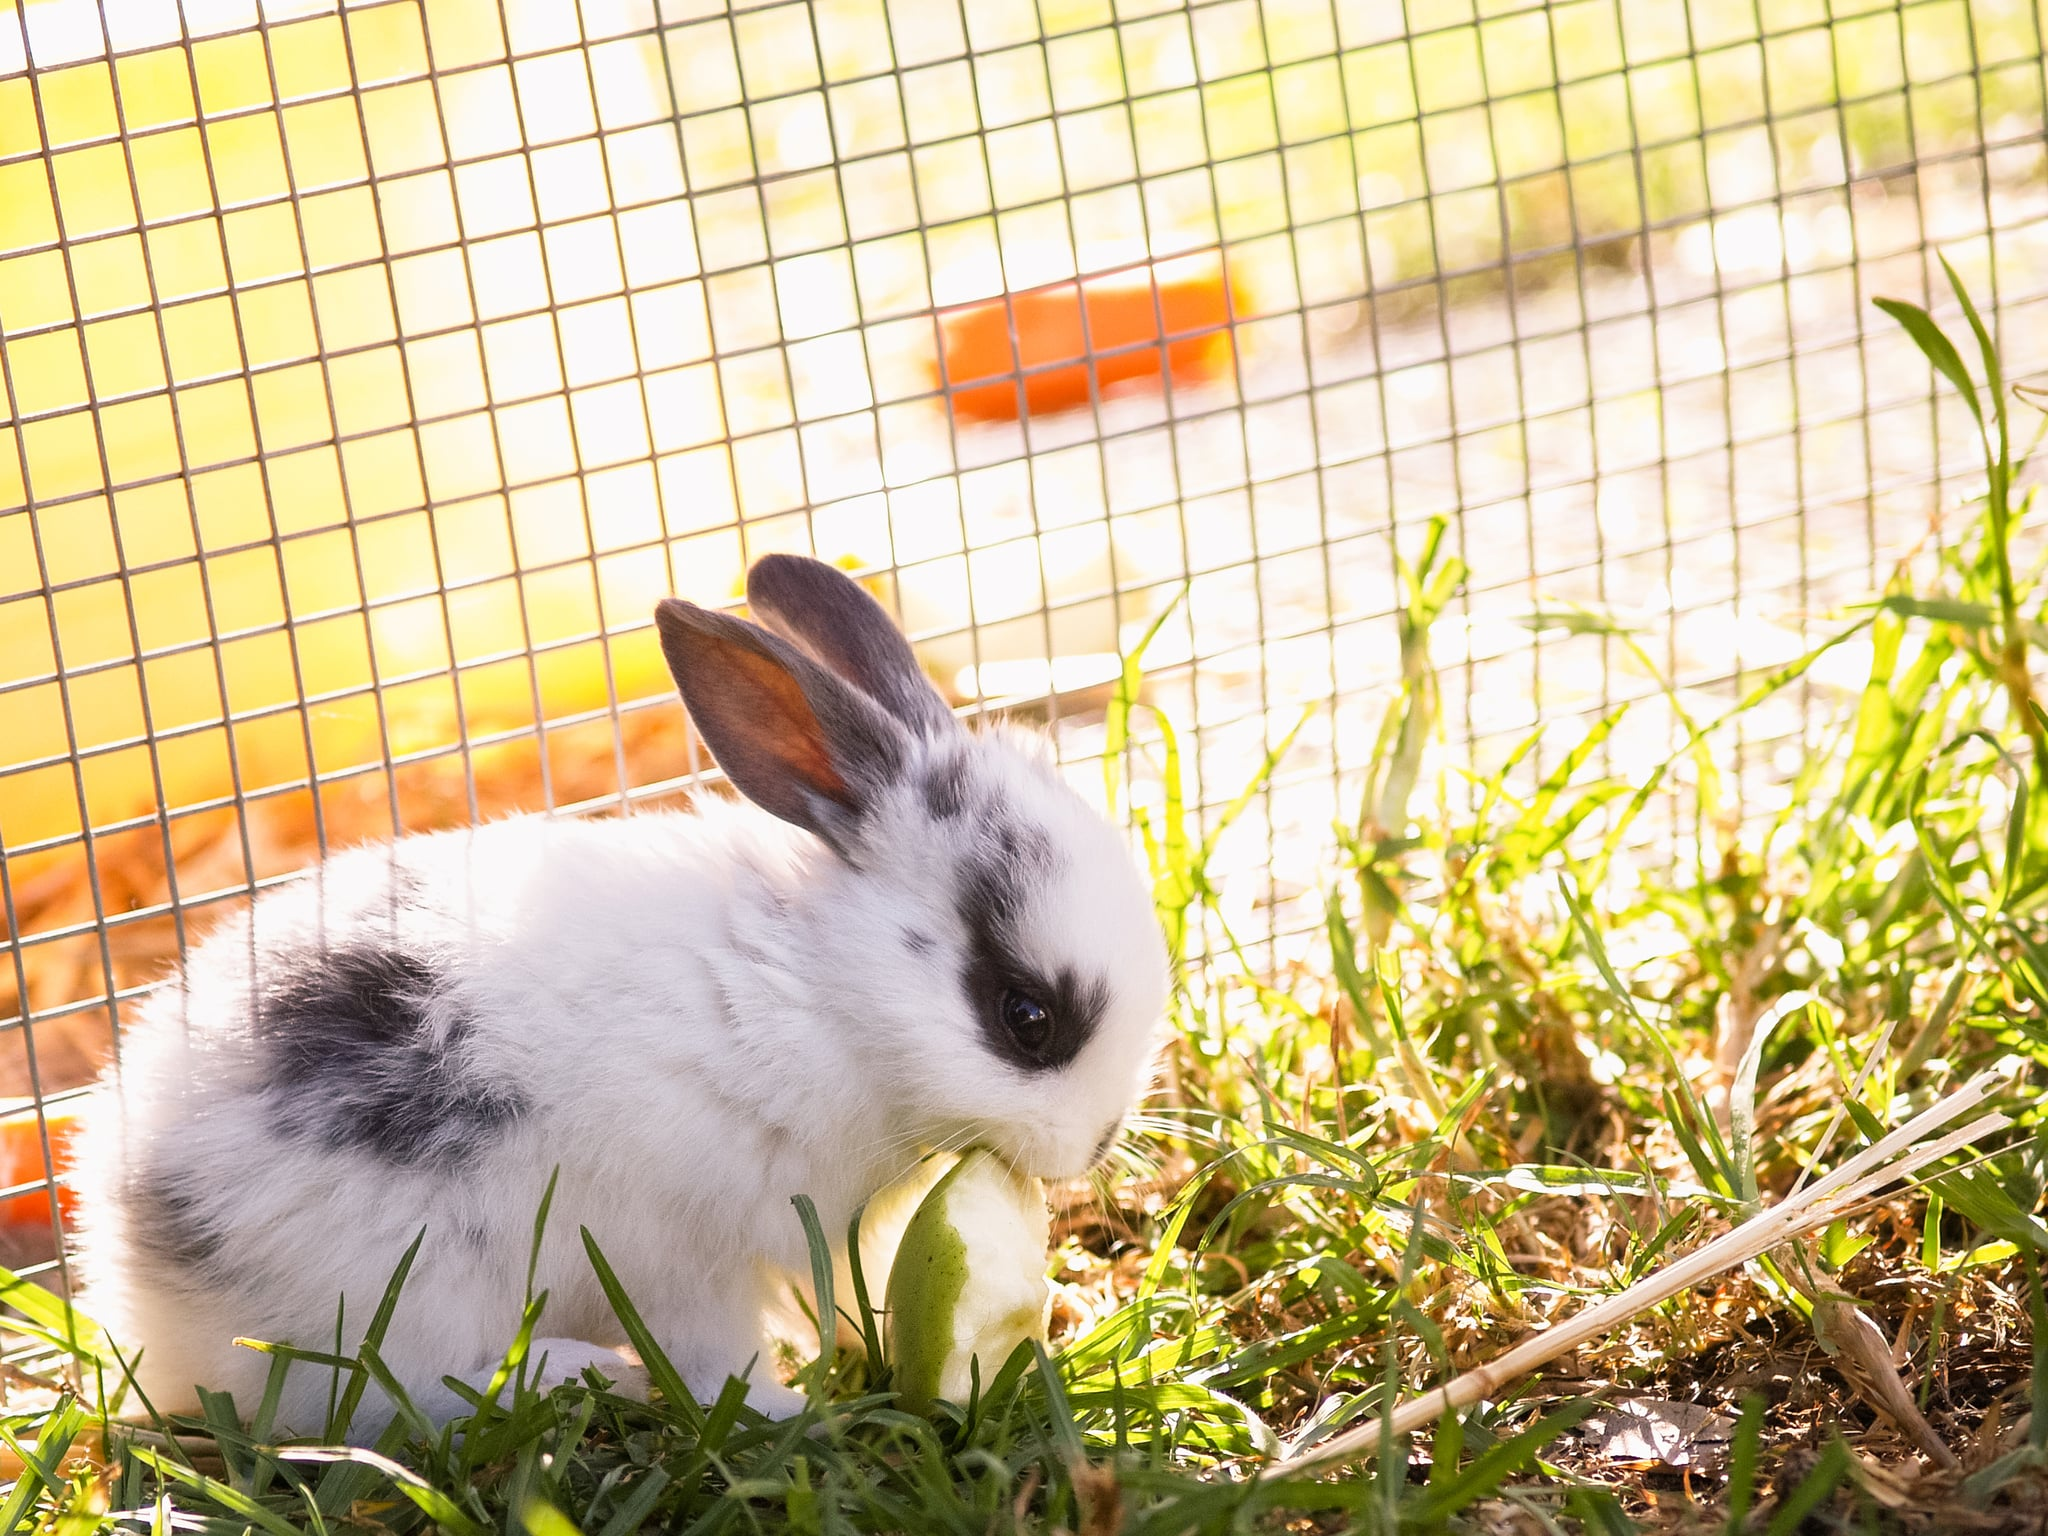 Baby dwarf rabbit sitting on grass by cage, eating apple piece